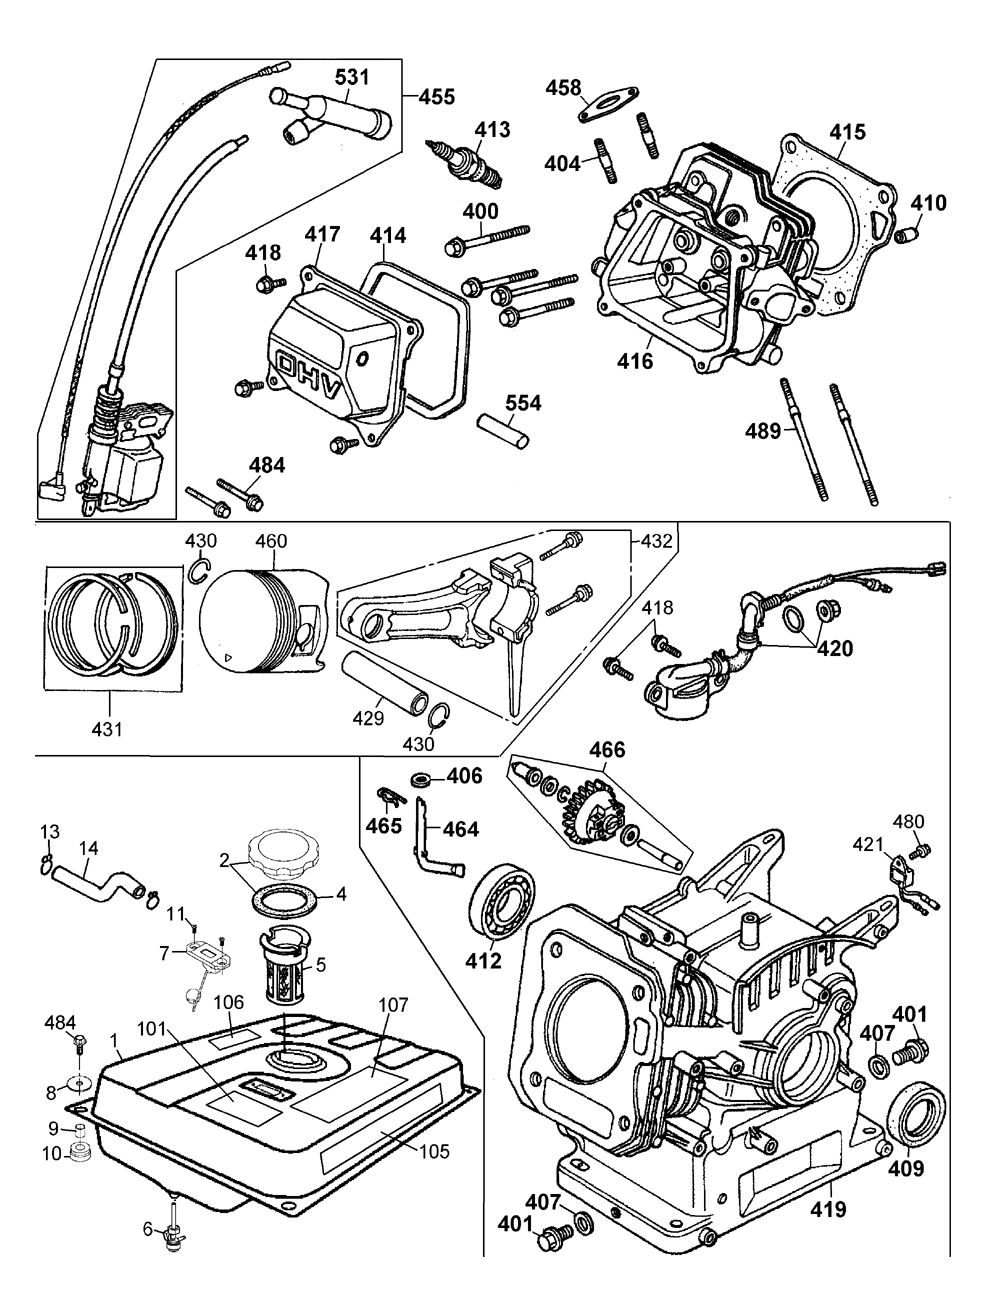 Kawasaki Mule 3010 Electrical Diagram Schematics Wiring Diagrams For Fuel Pump 2006 610 Starter Circuit